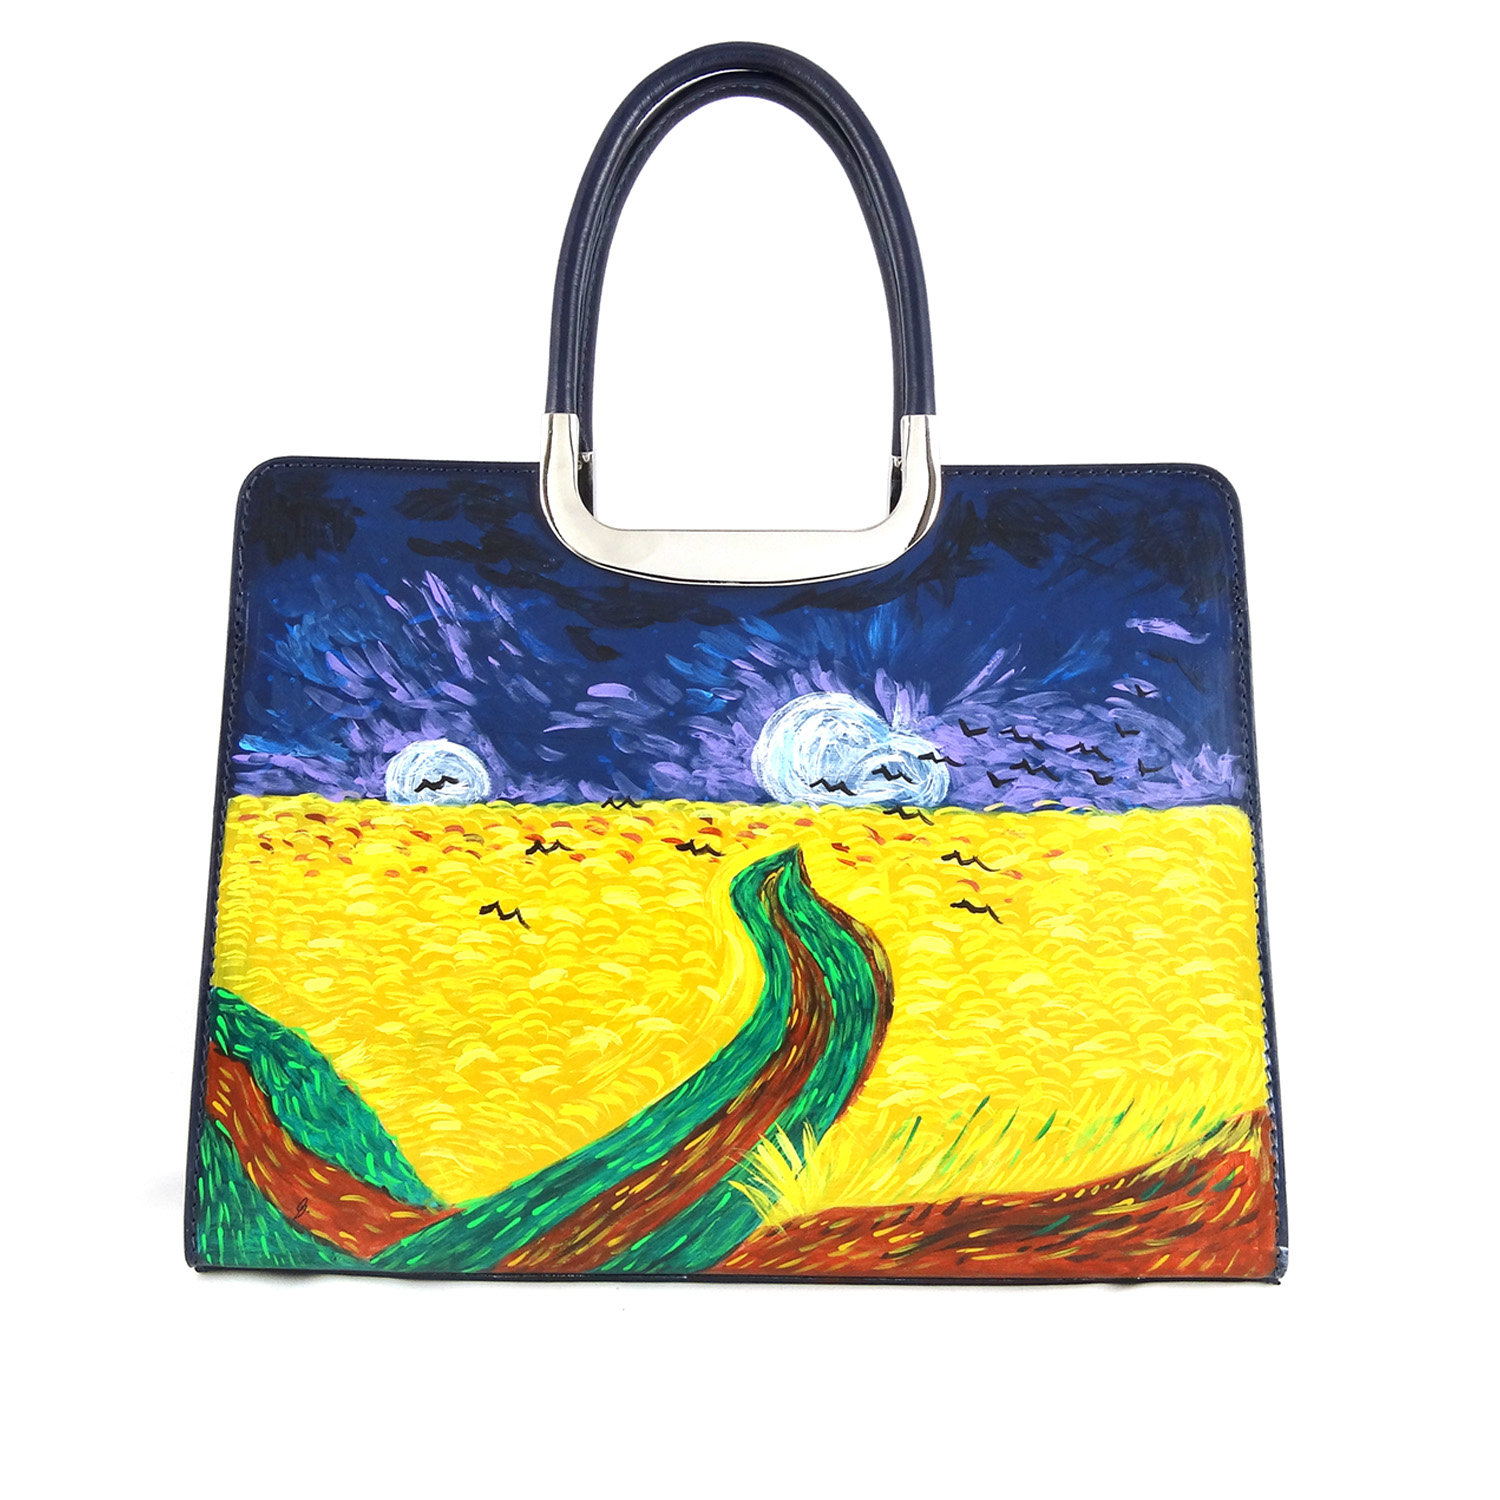 Hand painted bag - Wheatfield with Crows by Van Gogh